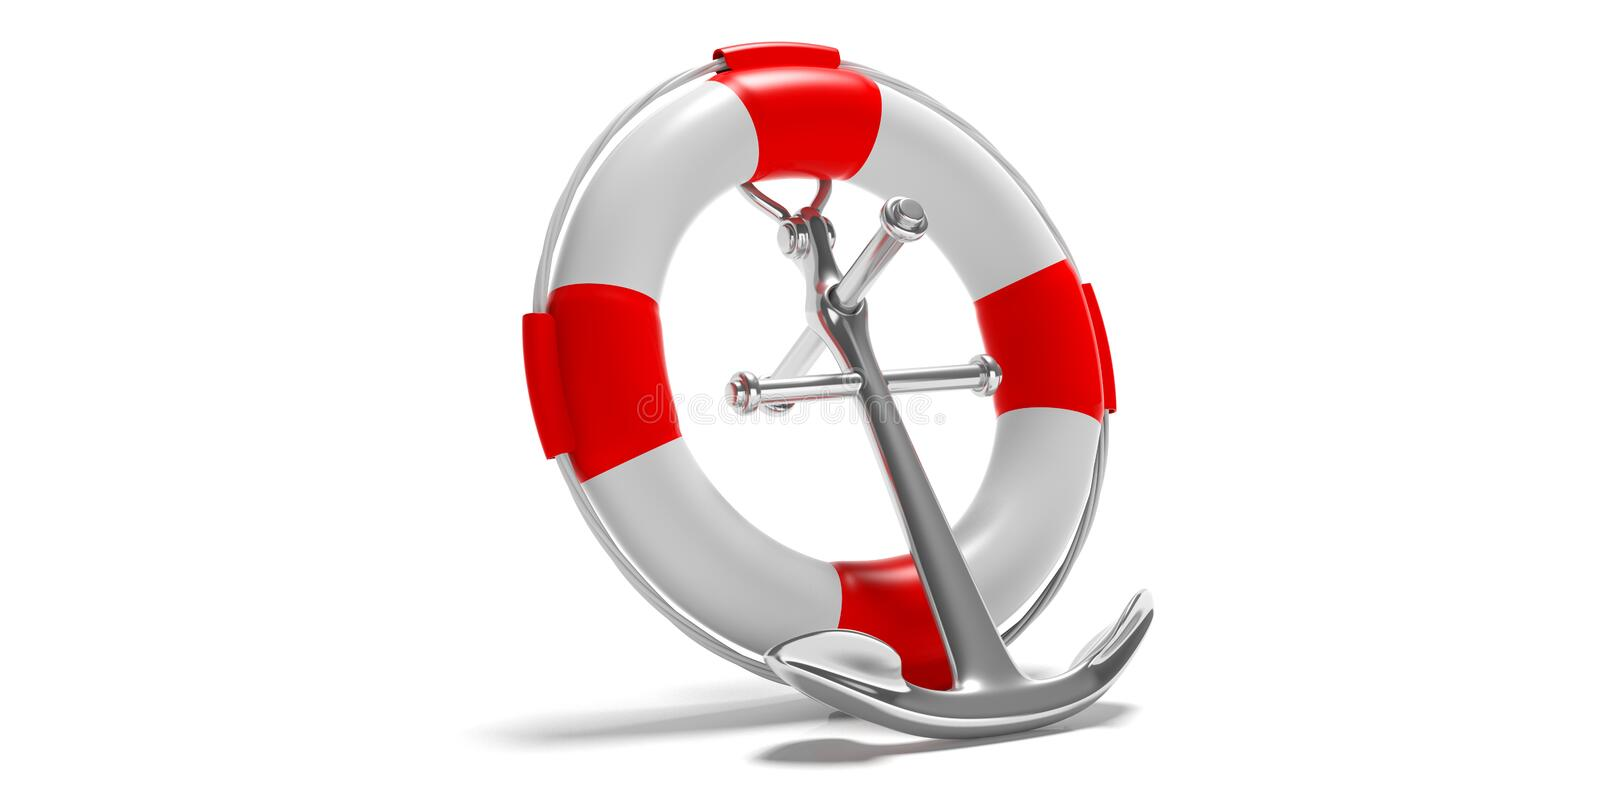 Help, safety on sea concept. Lifebuoy and navy anchor isolated on white background. 3d illustration royalty free illustration